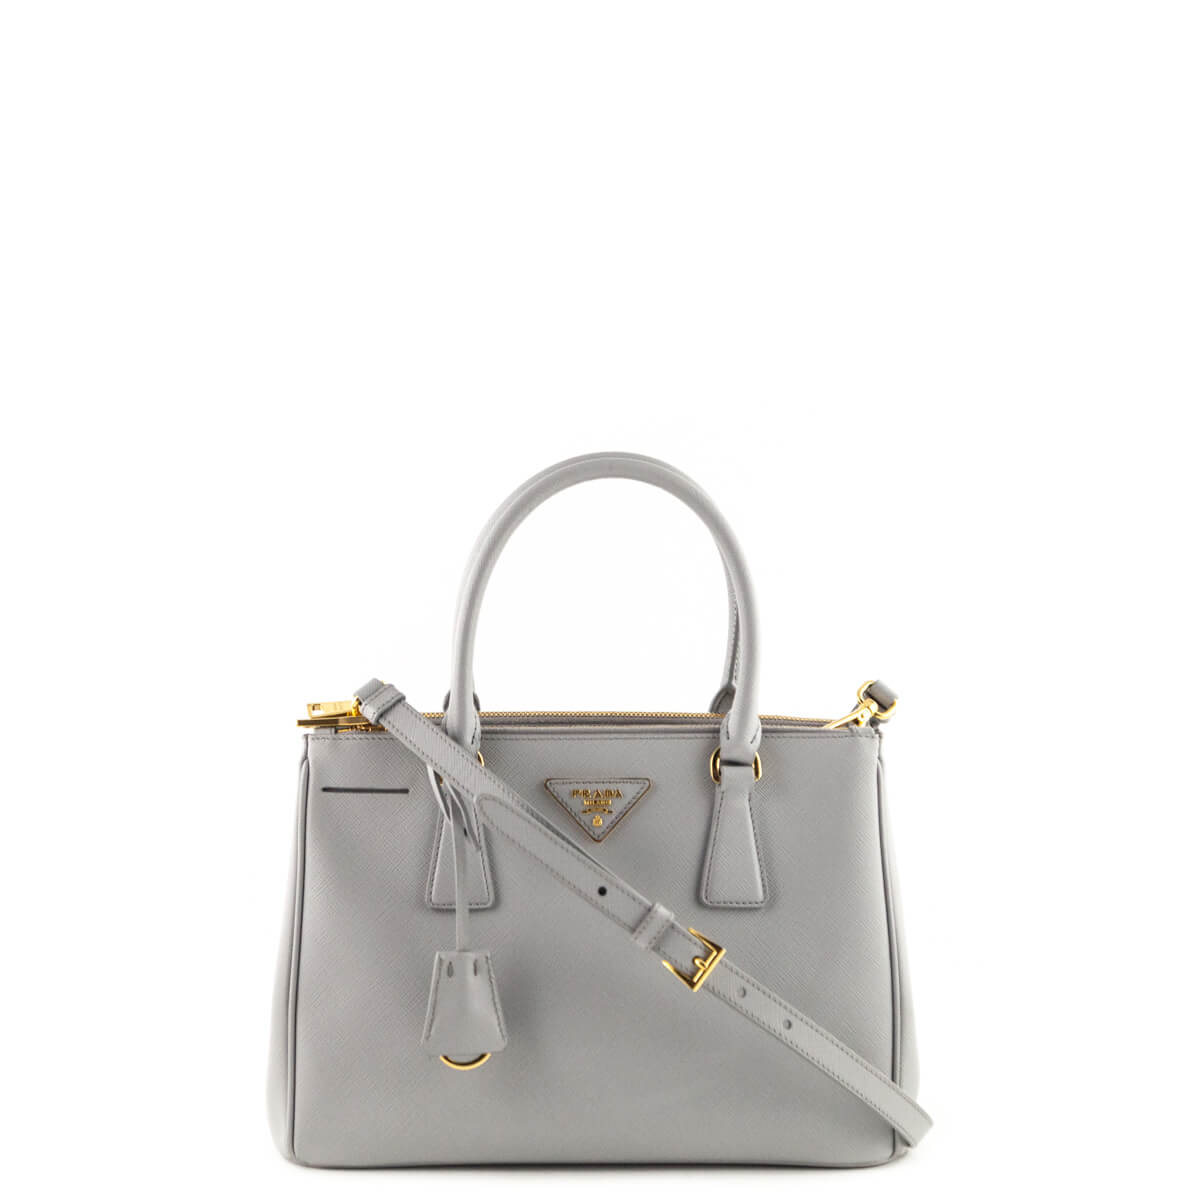 5a755bd5e697 ... france prada astral gray saffiano small galleria double zip lux tote  love that bag preowned 1a25b